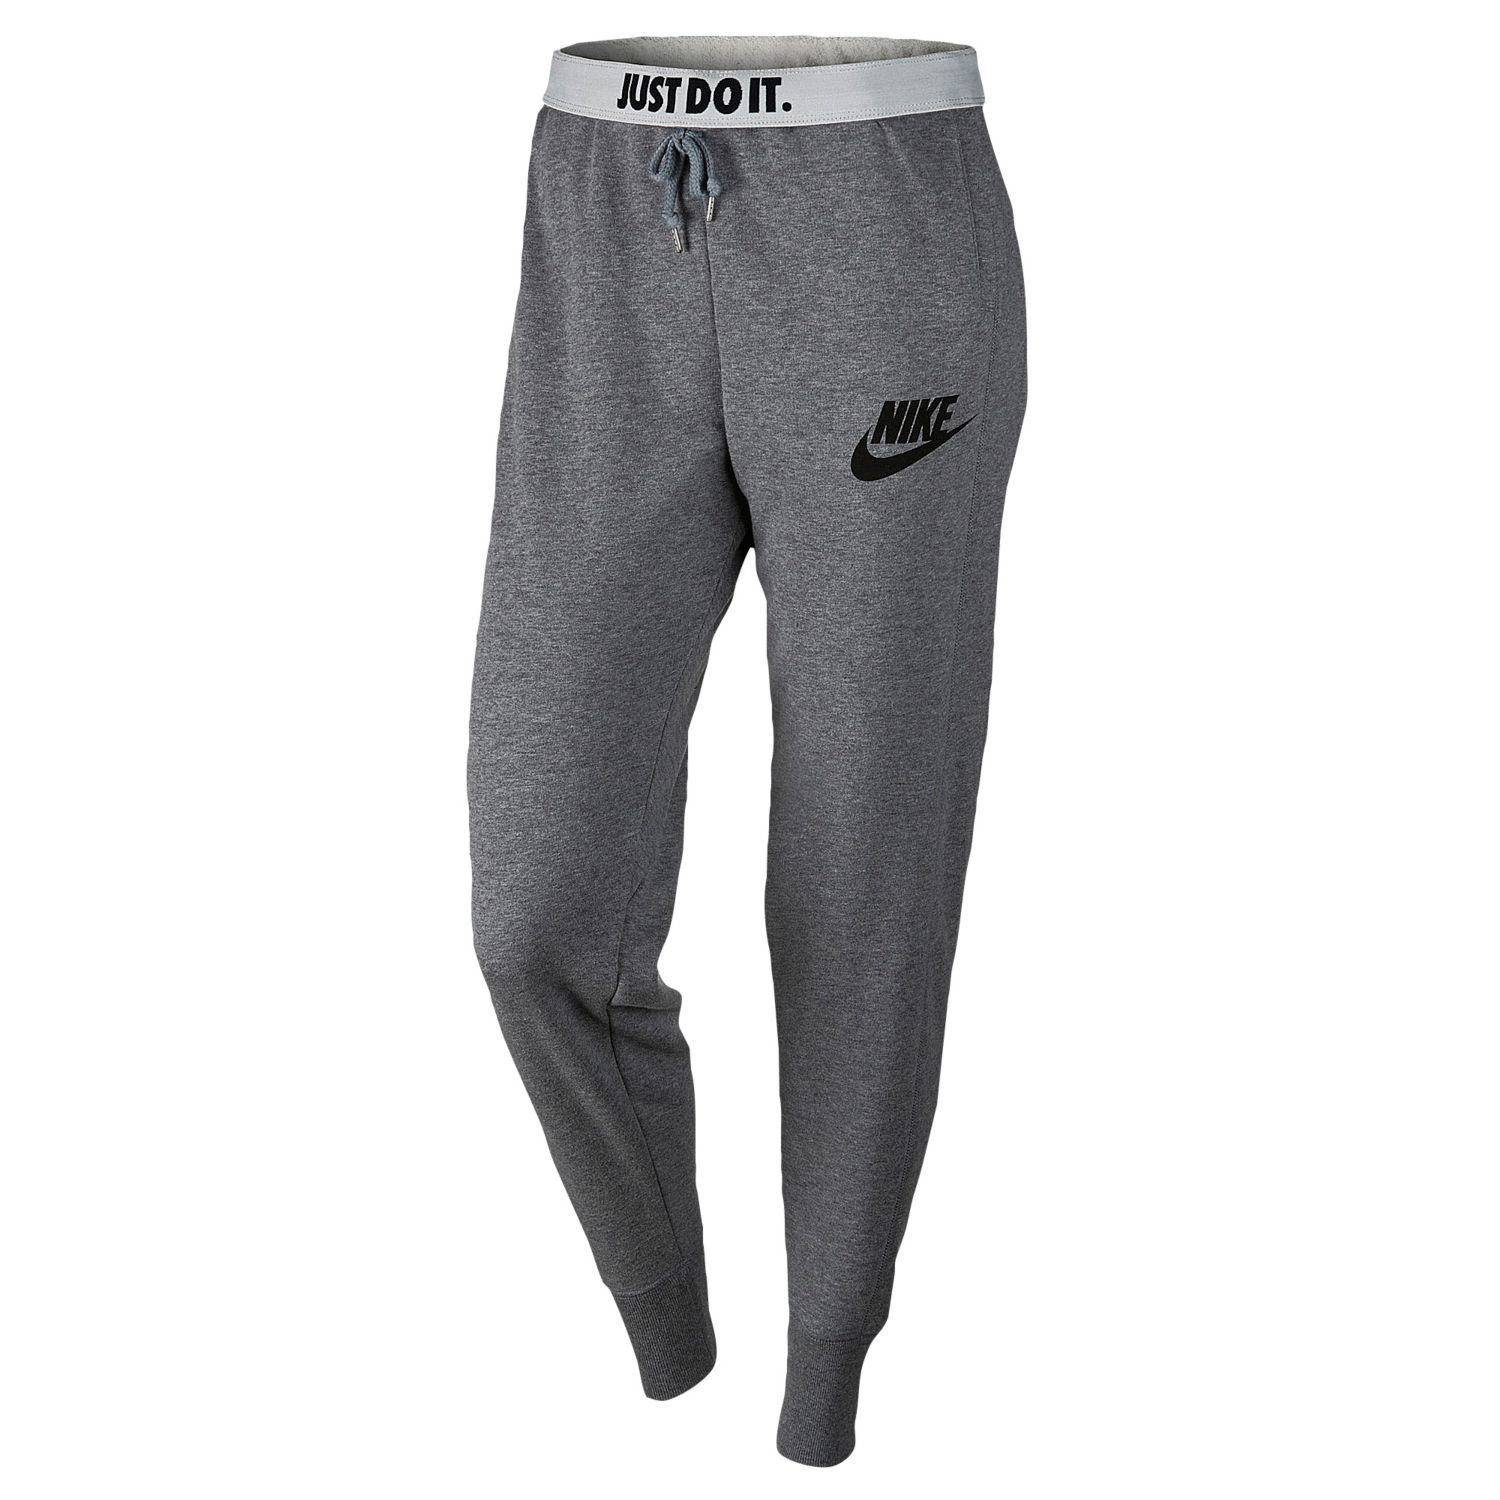 5da10942a067 Nike Rally Jogger Pants - Women s - Casual - Clothing - Carbon Heather Cool  Grey Black